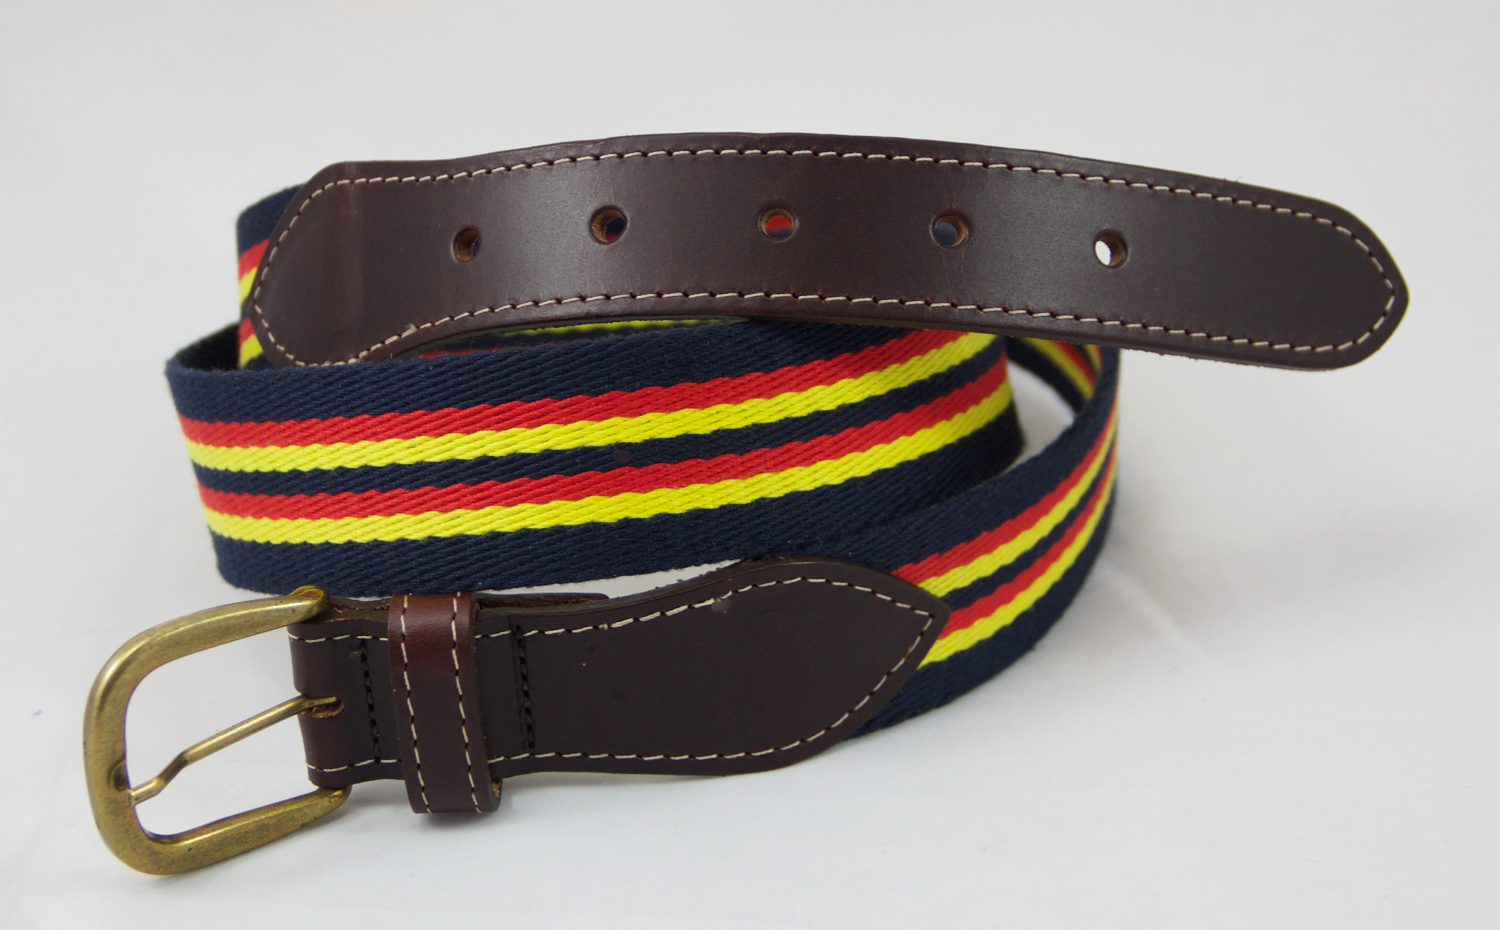 REME Belt_edited